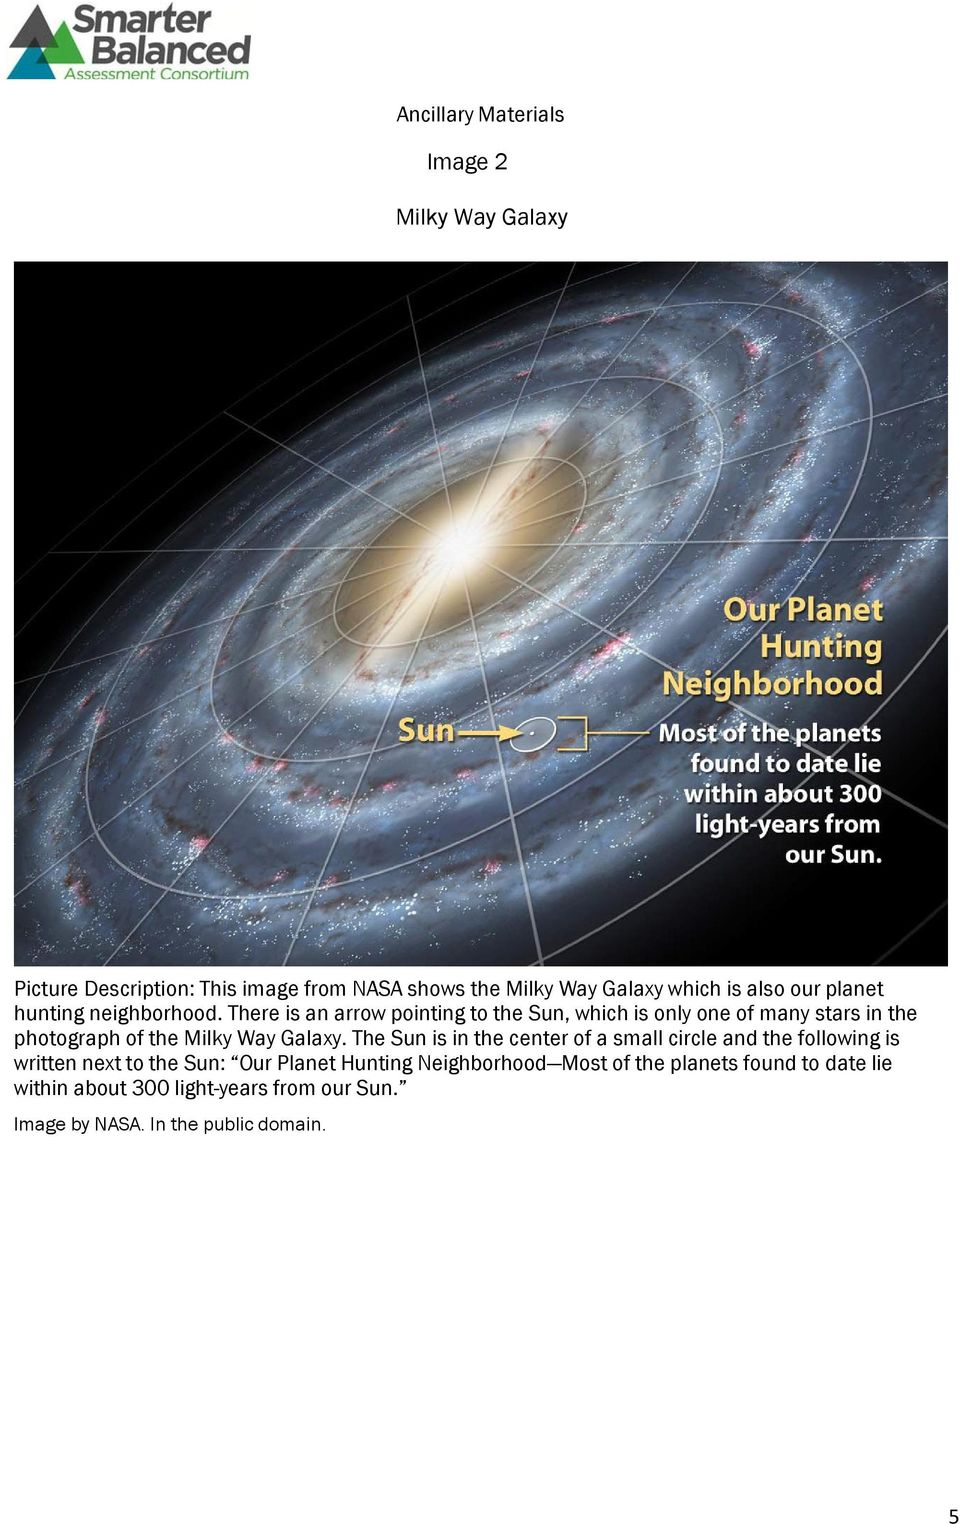 There is an arrw pinting t the Sun, which is nly ne f many stars in the phtgraph f the Milky Way Galaxy.